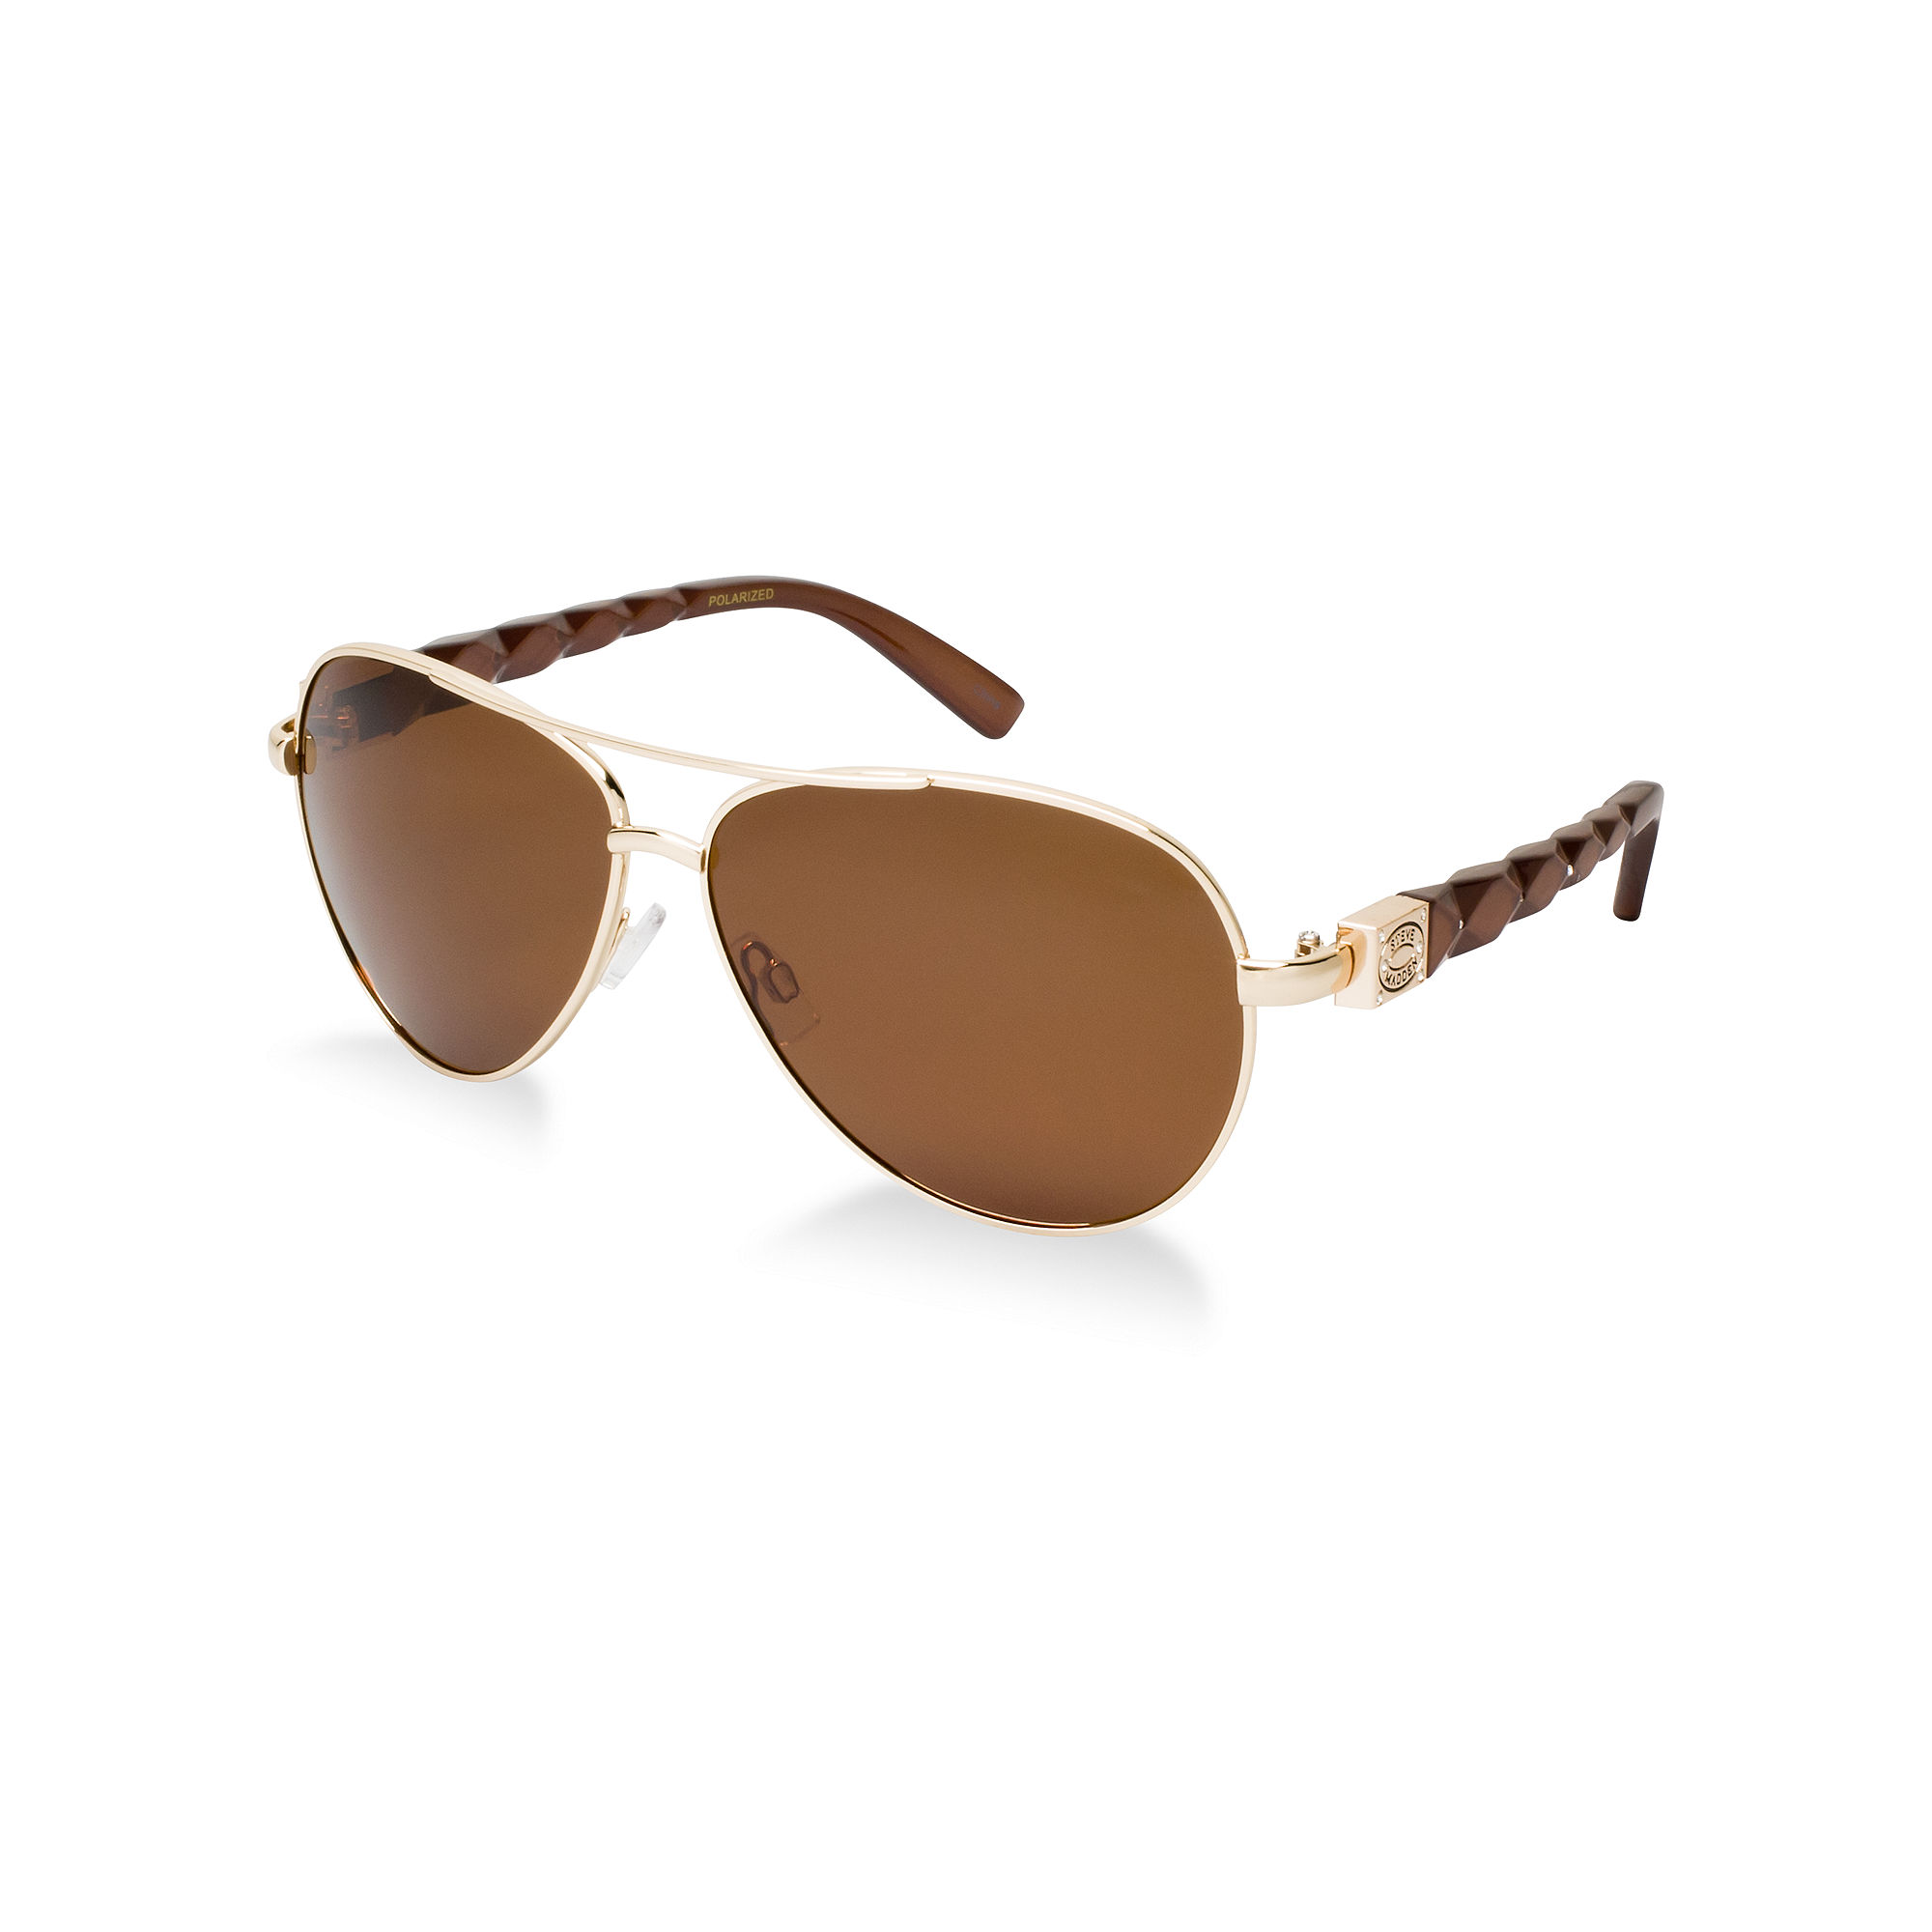 Steve Sunglasses  steve madden sunglasses in brown for men lyst